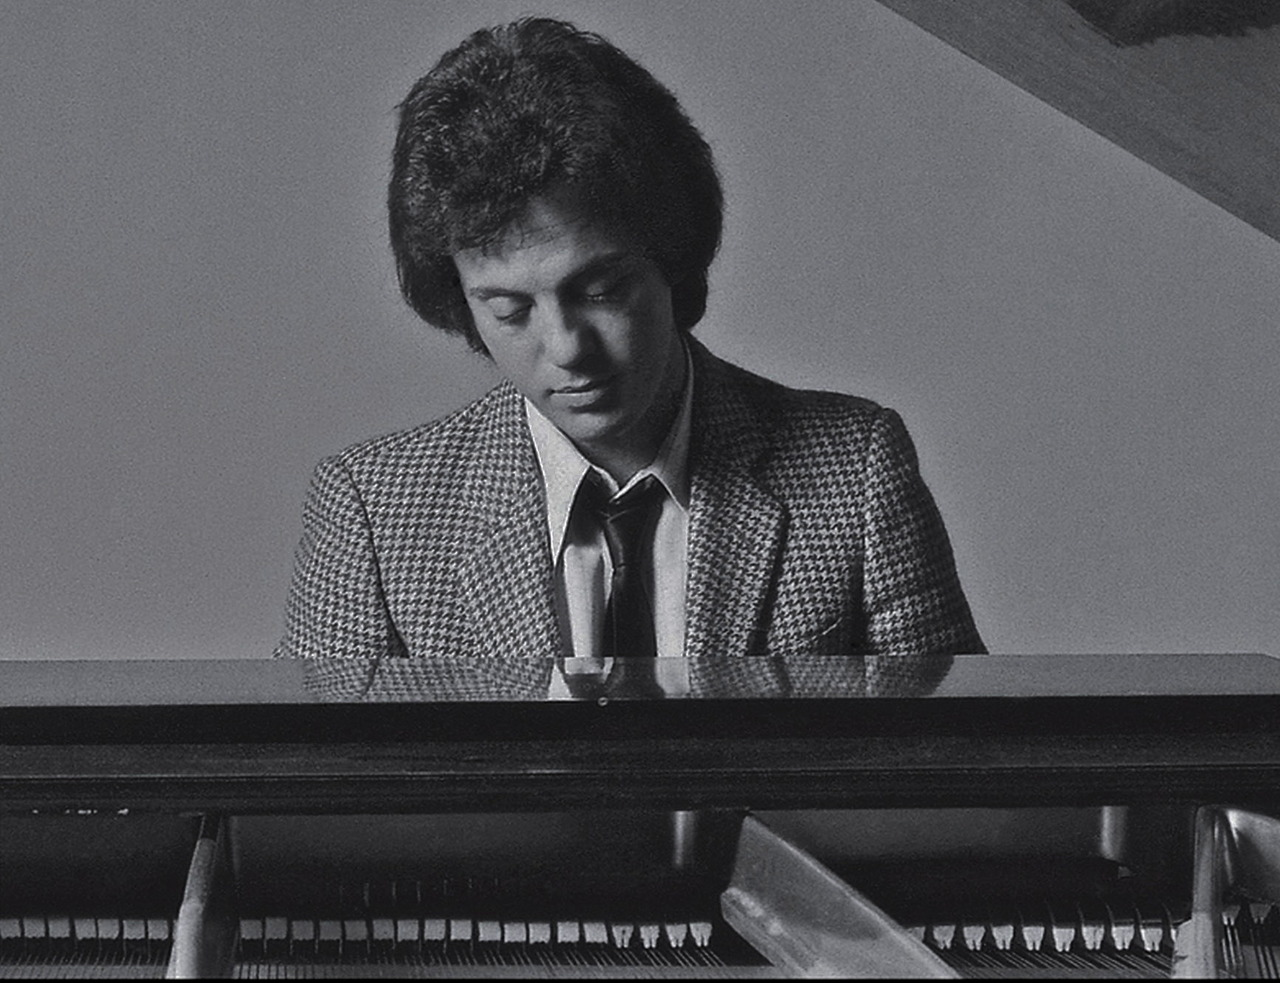 Billy Joel Piano Man The Piano Man Behind Billy Joel And Secret Love Affair